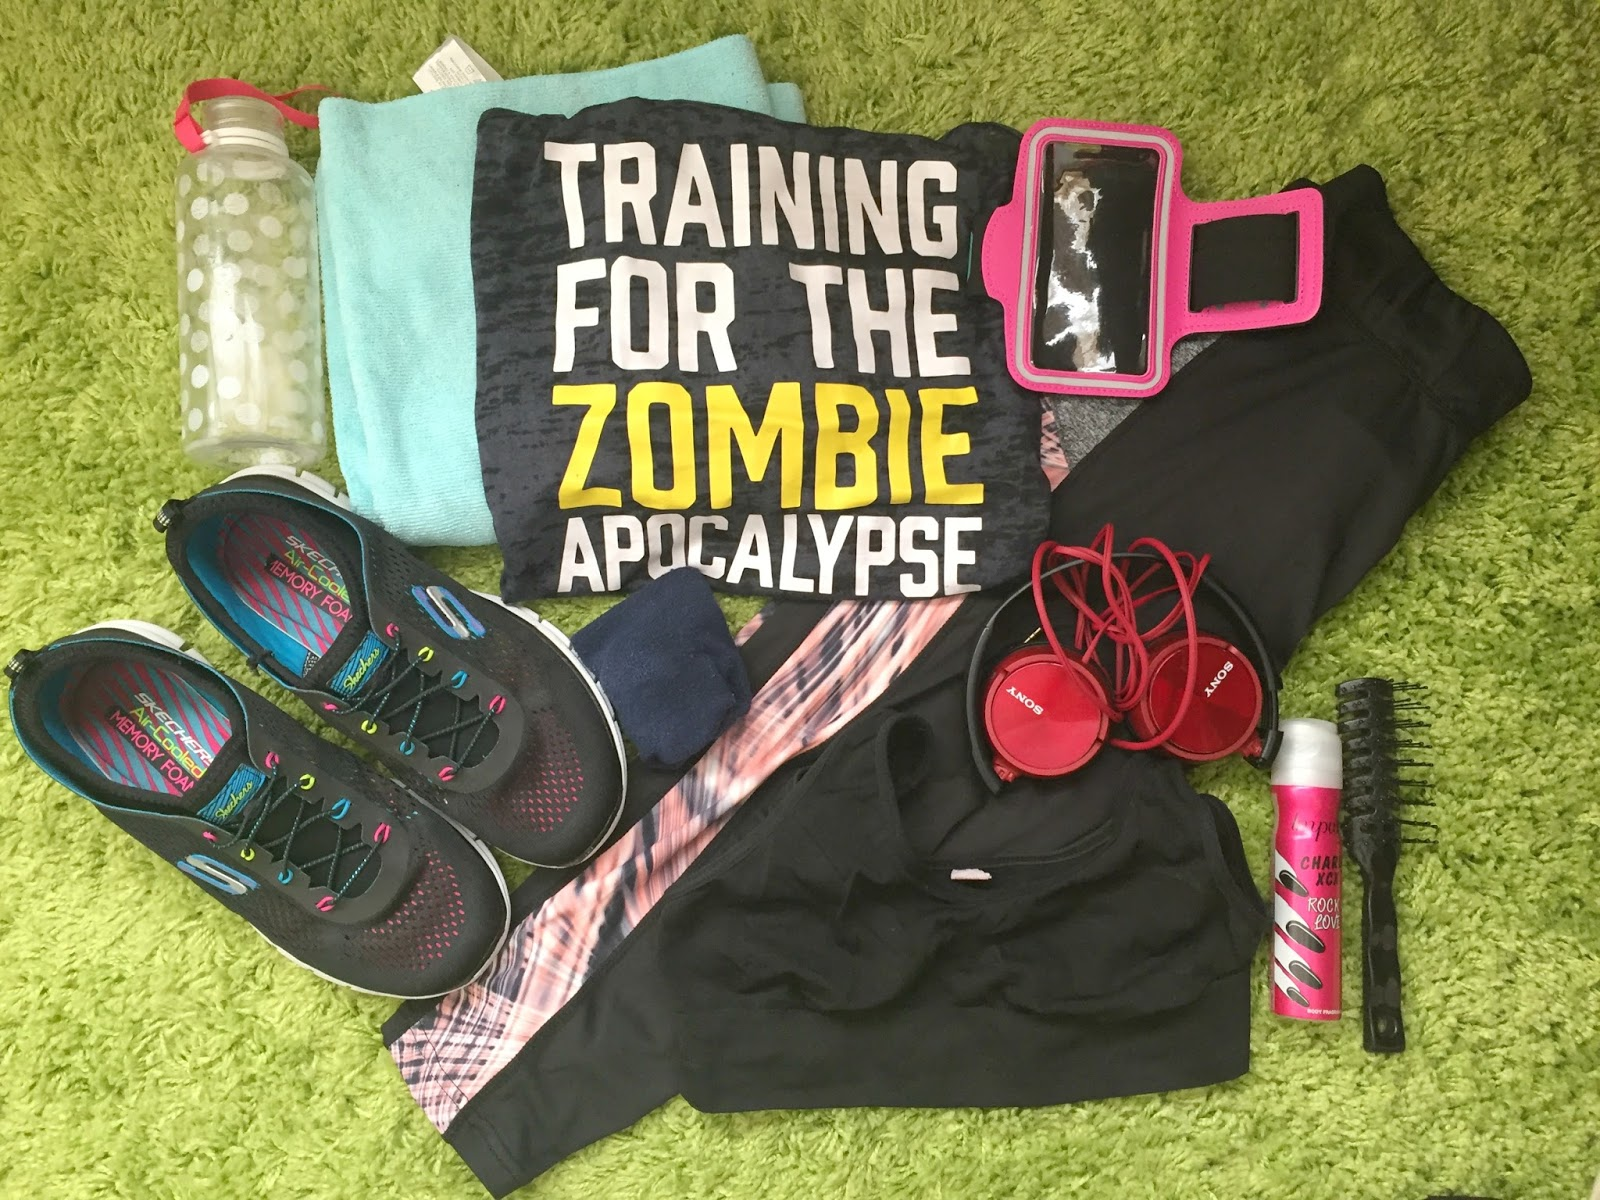 Formidable Joy   Formidable Joy Blog   Fitness   Fitness in January   New Year's Resolutions